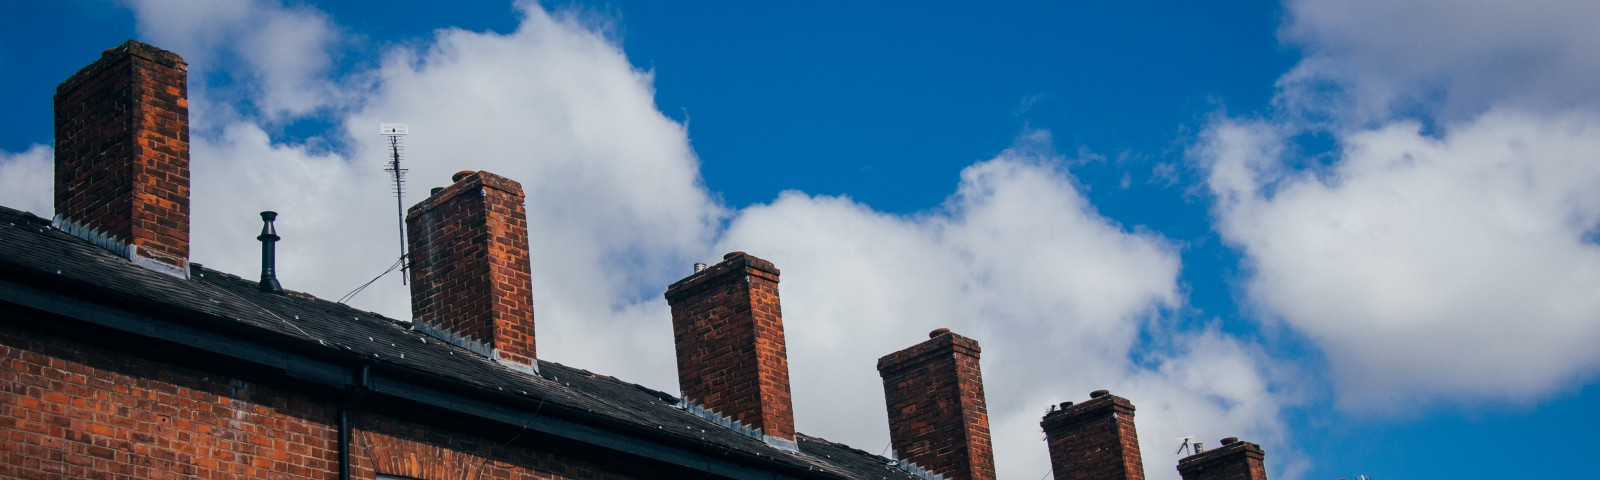 A row of brick-built terraced houses under a bright blue sky with a few white clouds.